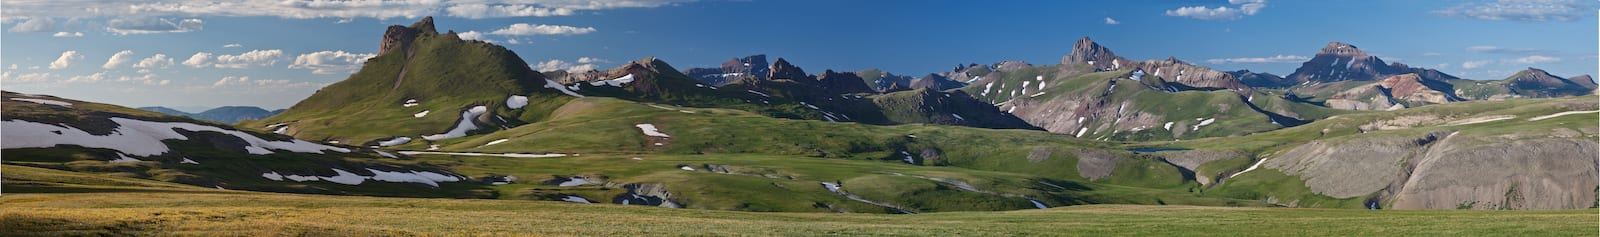 Uncompahgre National Wilderness Area, CO